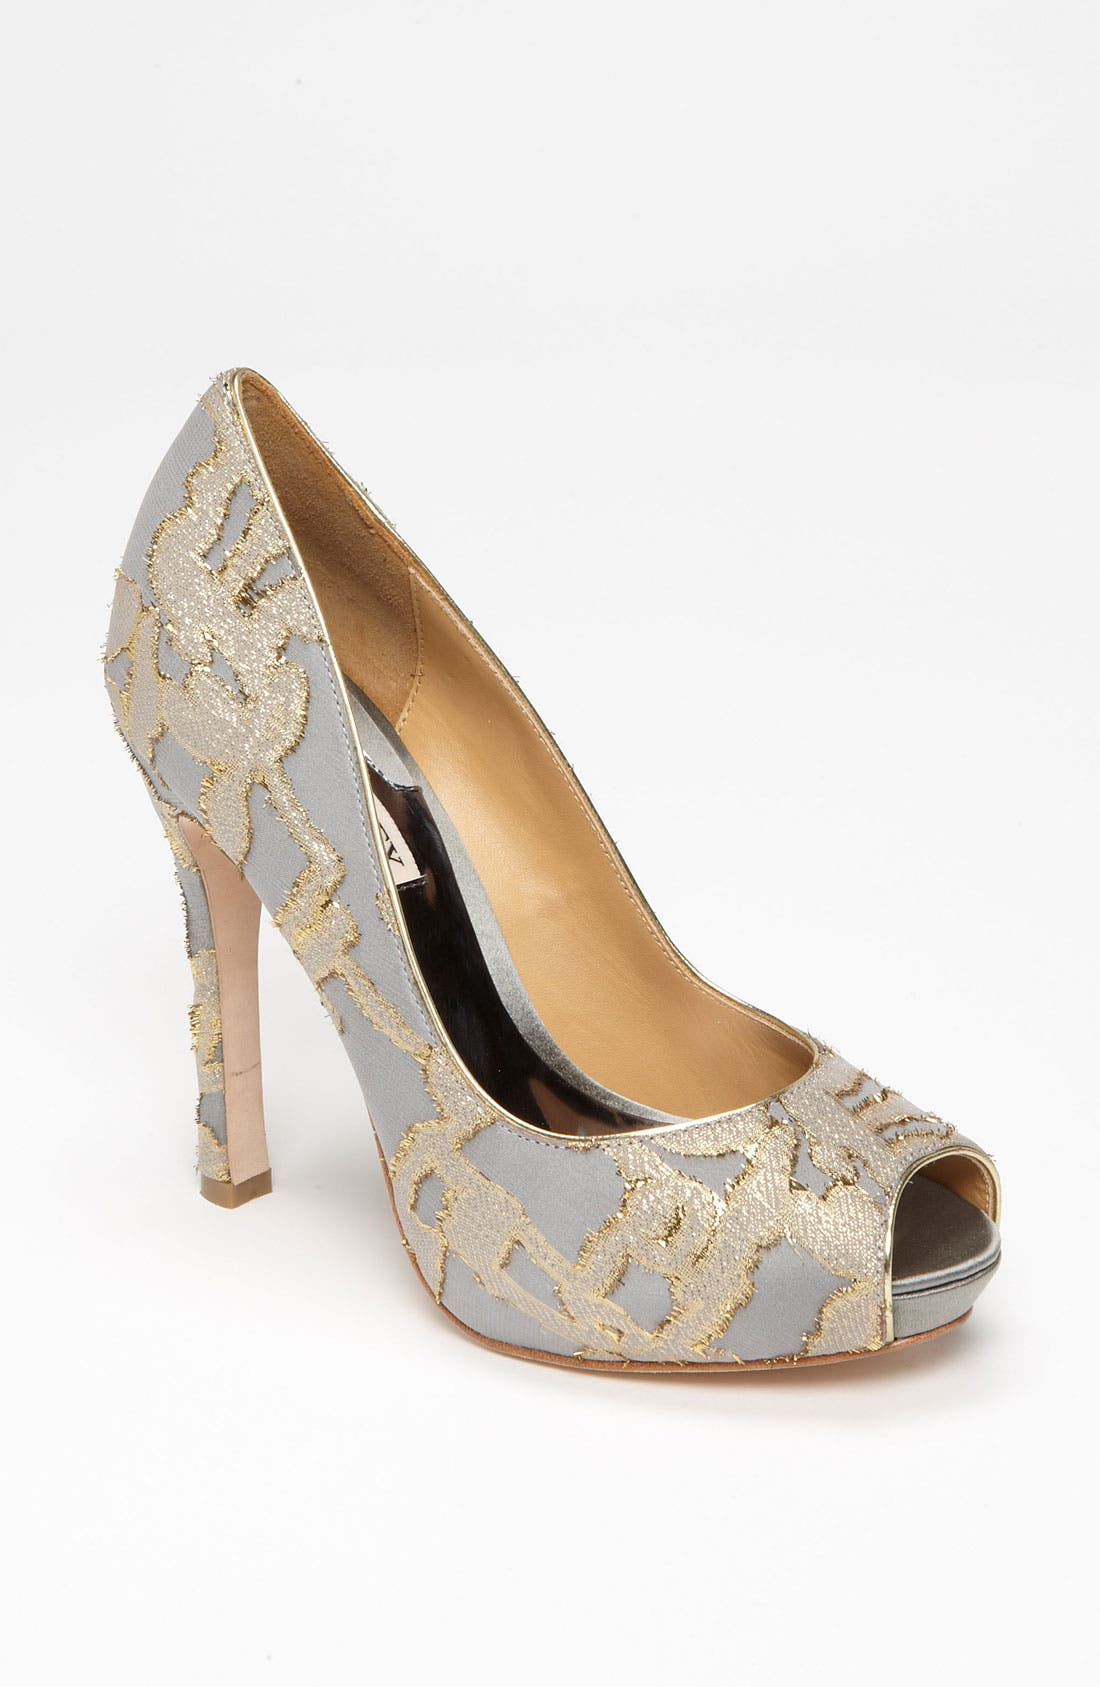 Main Image - Badgley Mischka 'Roxie' Pump